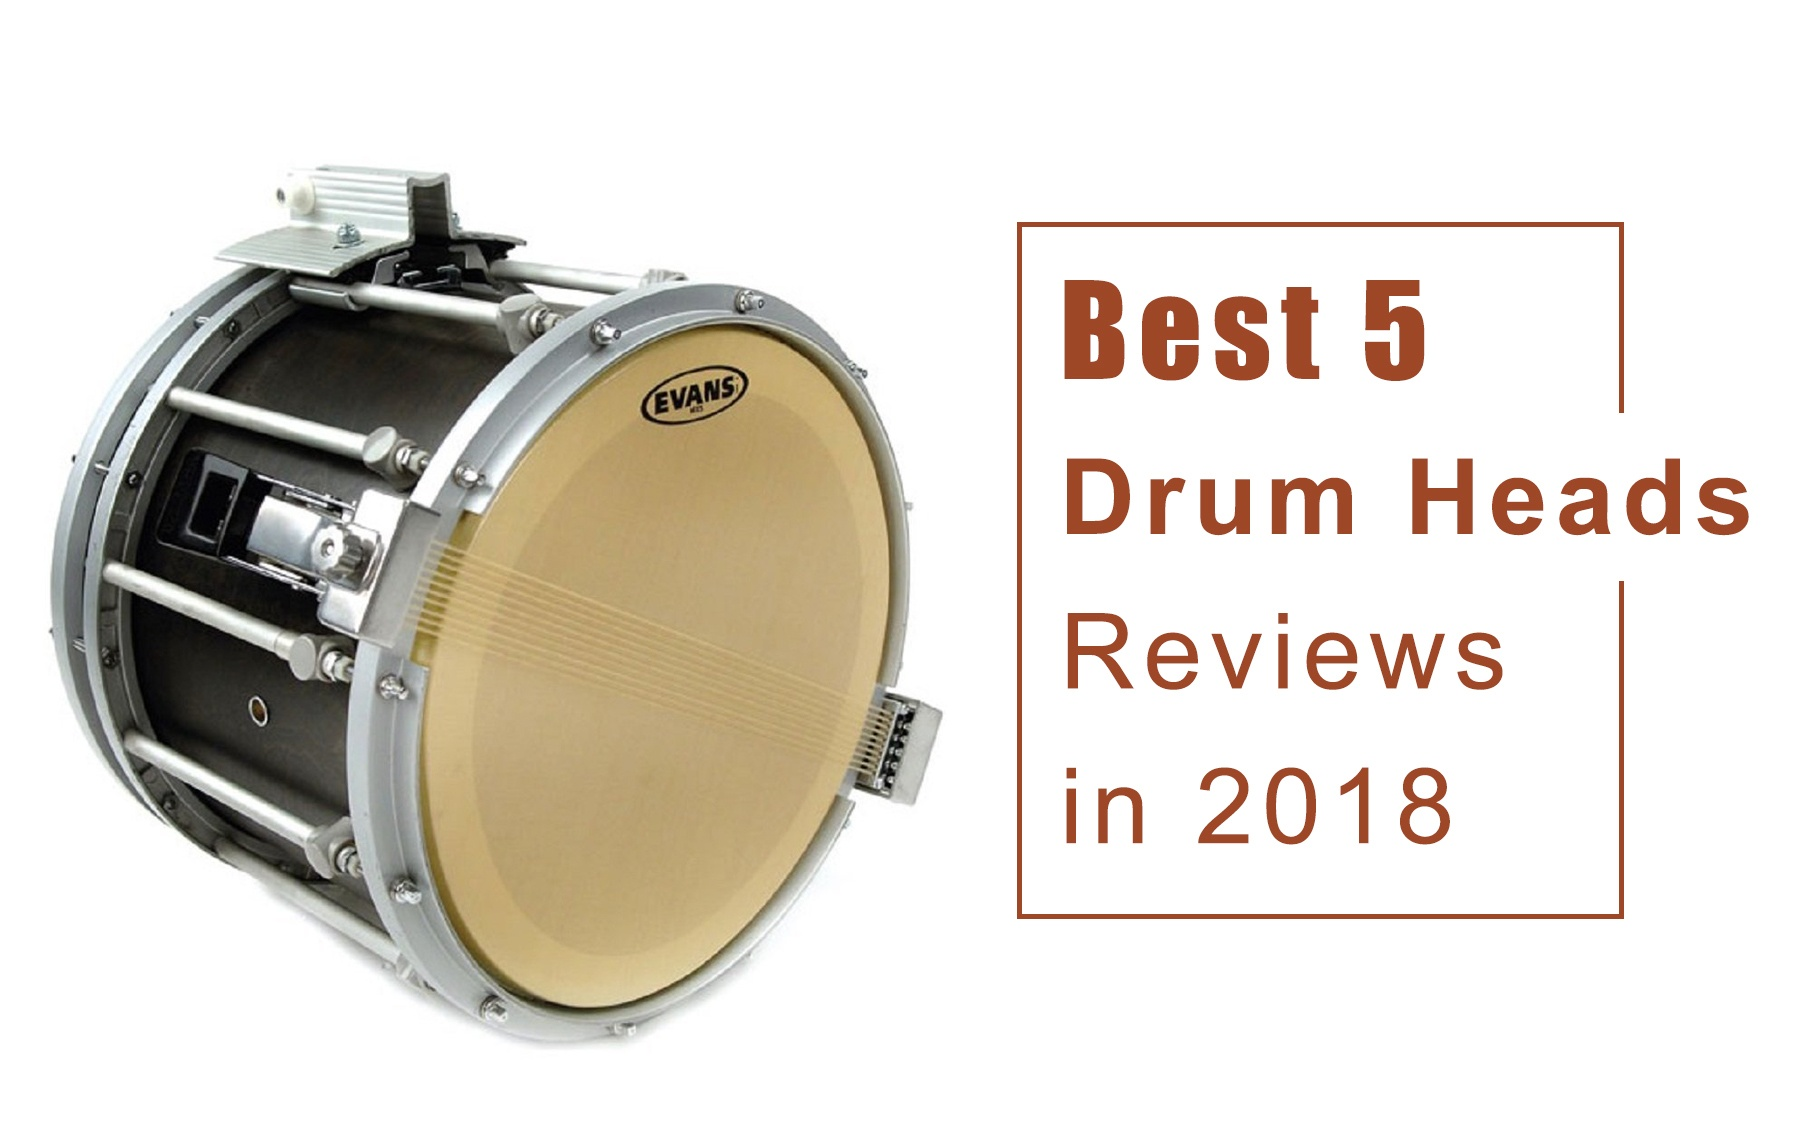 Best 5 Drum Heads Reviews